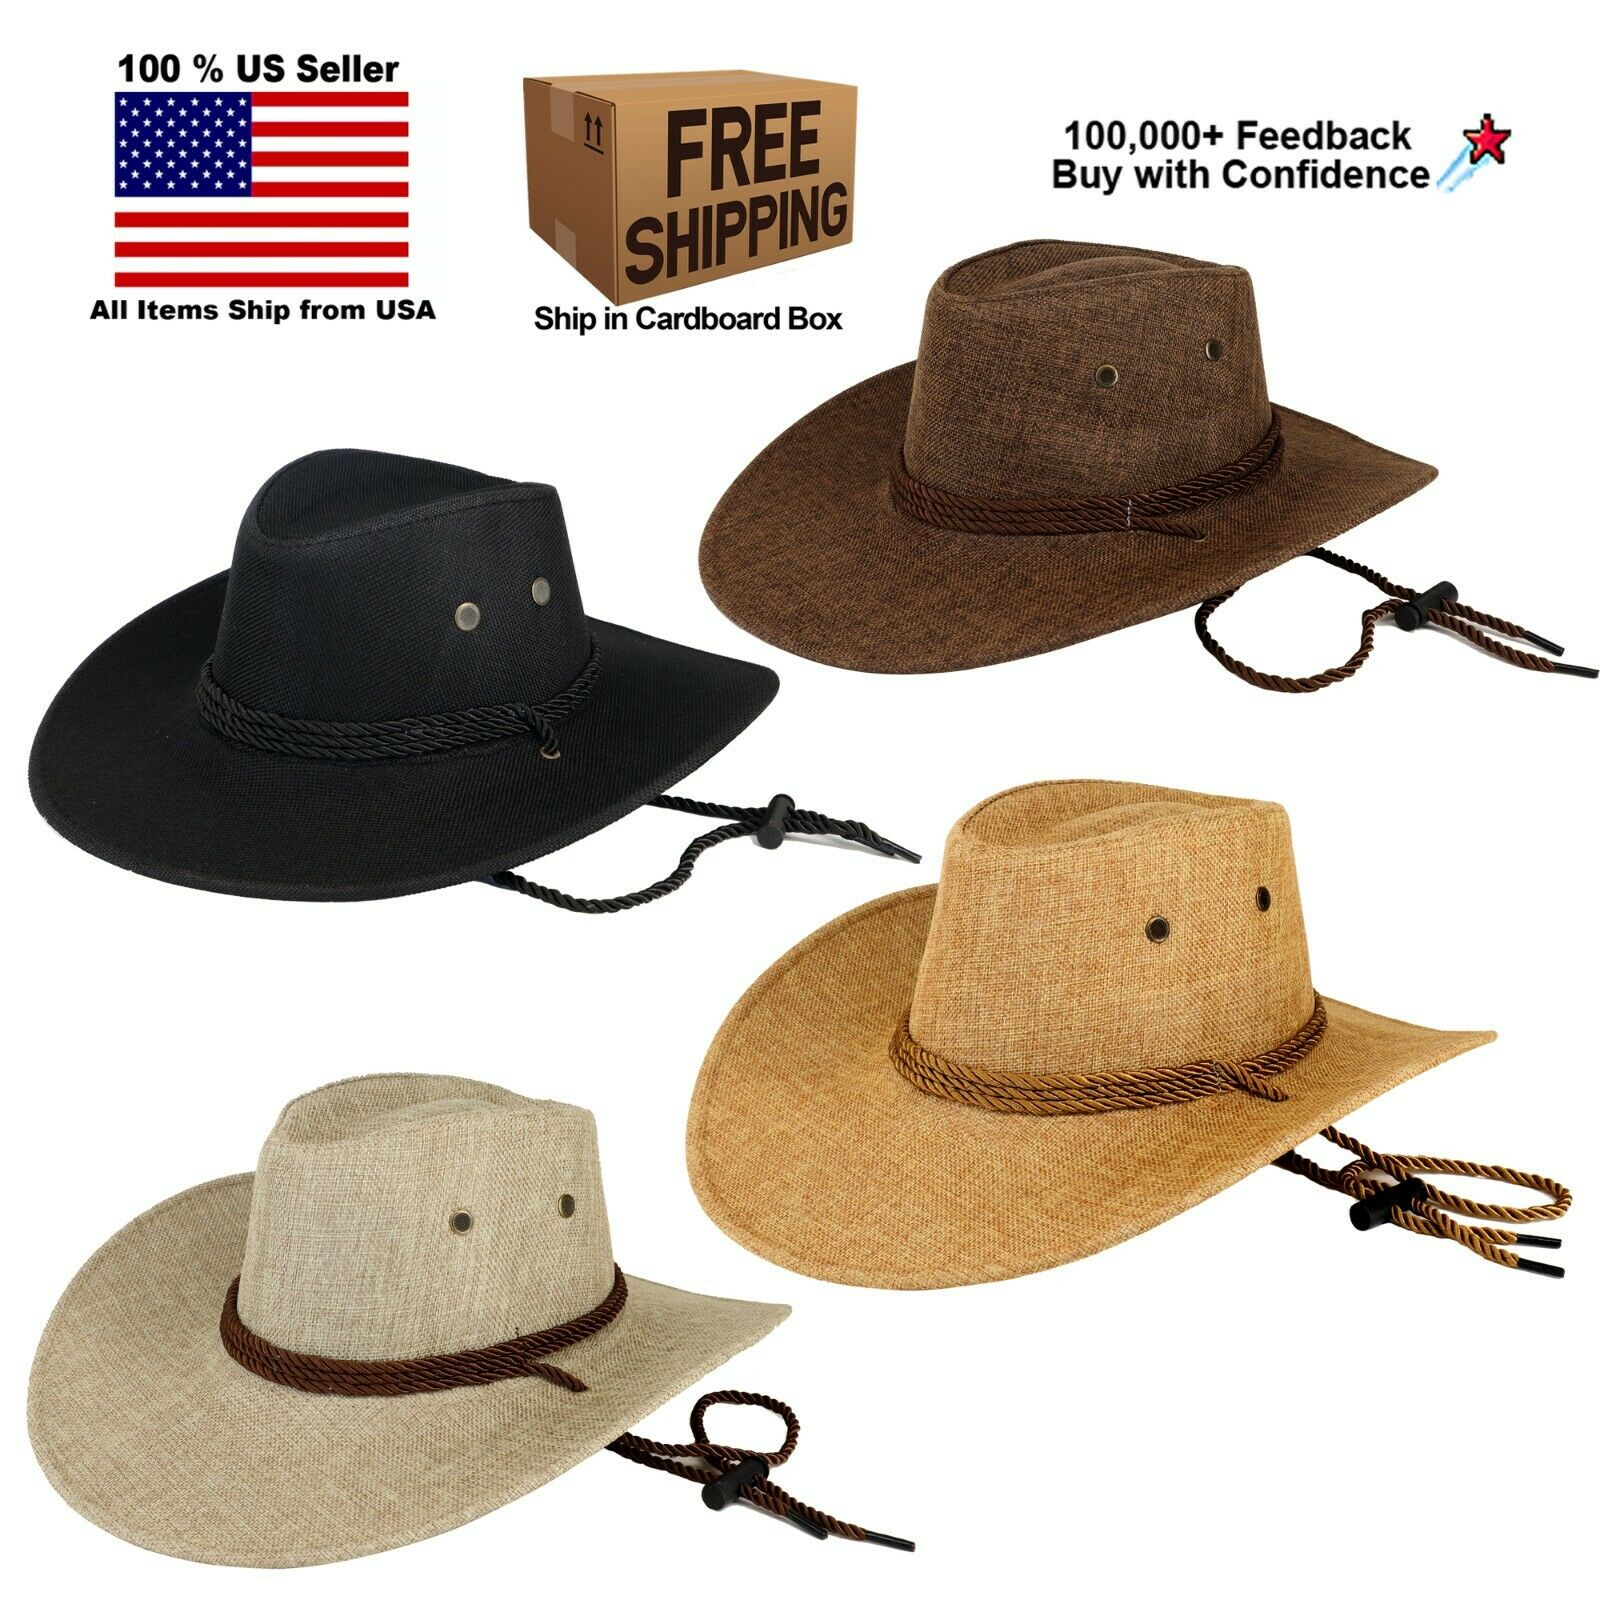 FEDORA PANAMA COWBOY INDIANA JONES UPTURN WIDE BRIM FABRIC HAT Clothing, Shoes & Accessories